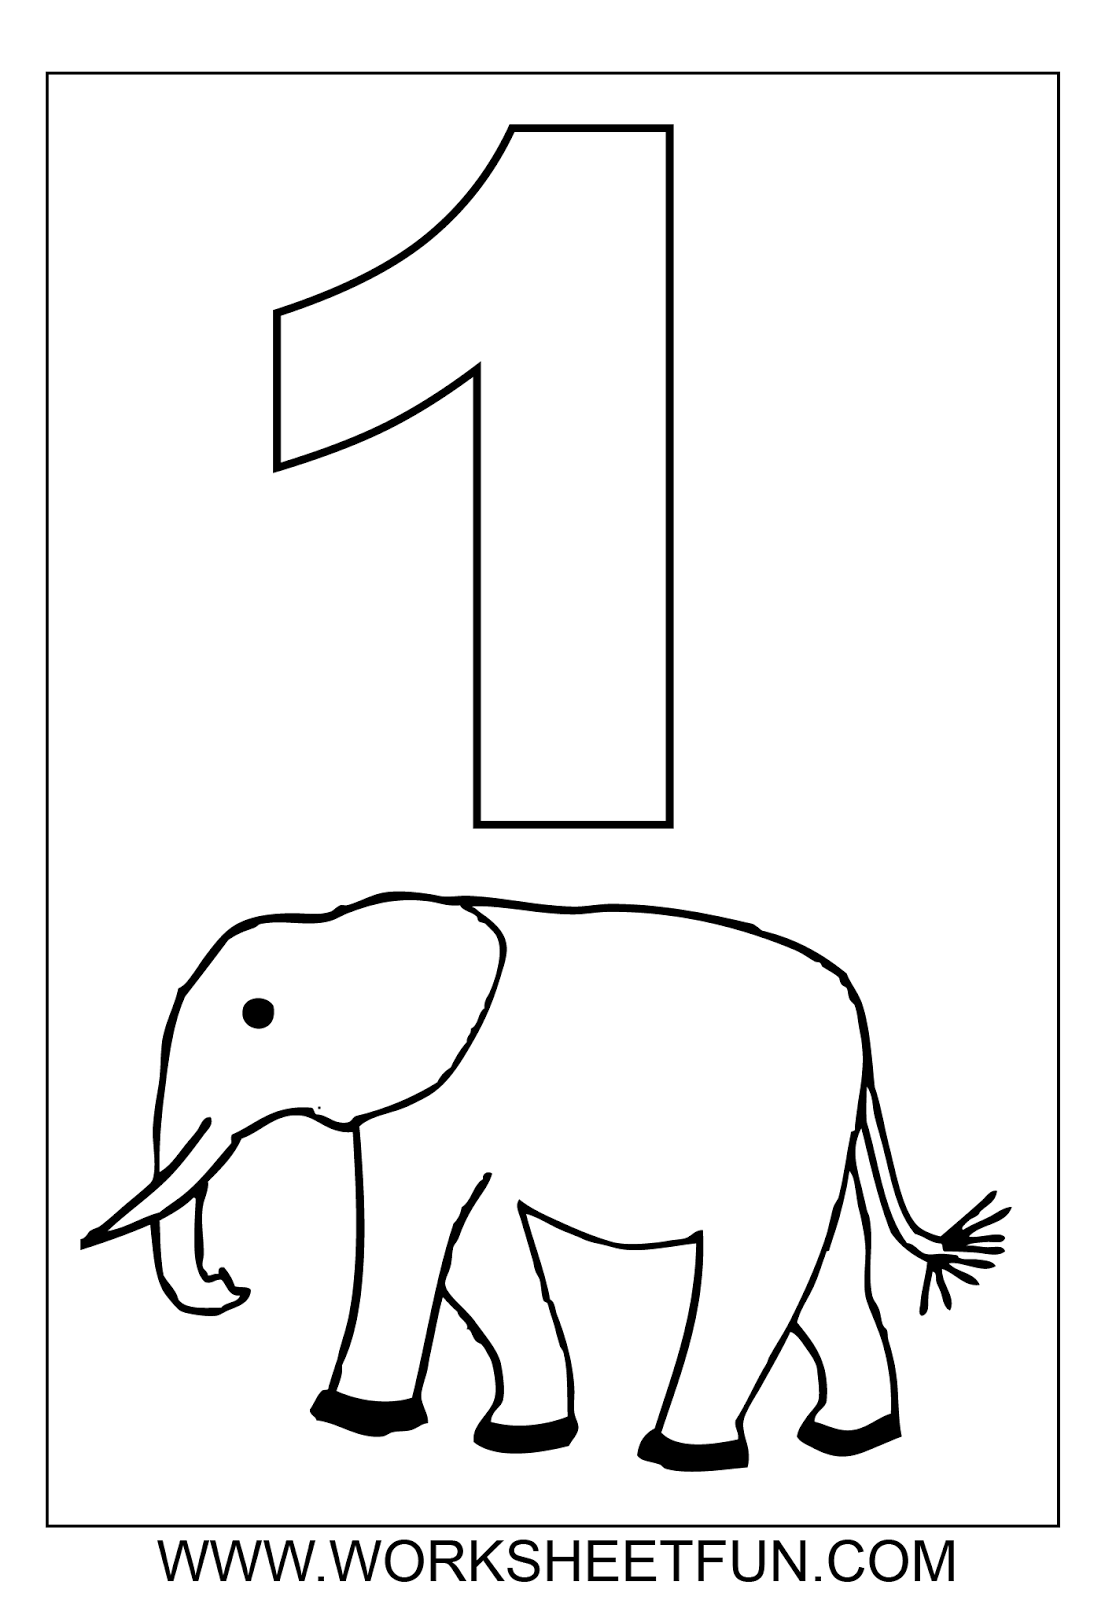 Coloring Pages For Numbers 1 9 Coloring Pages